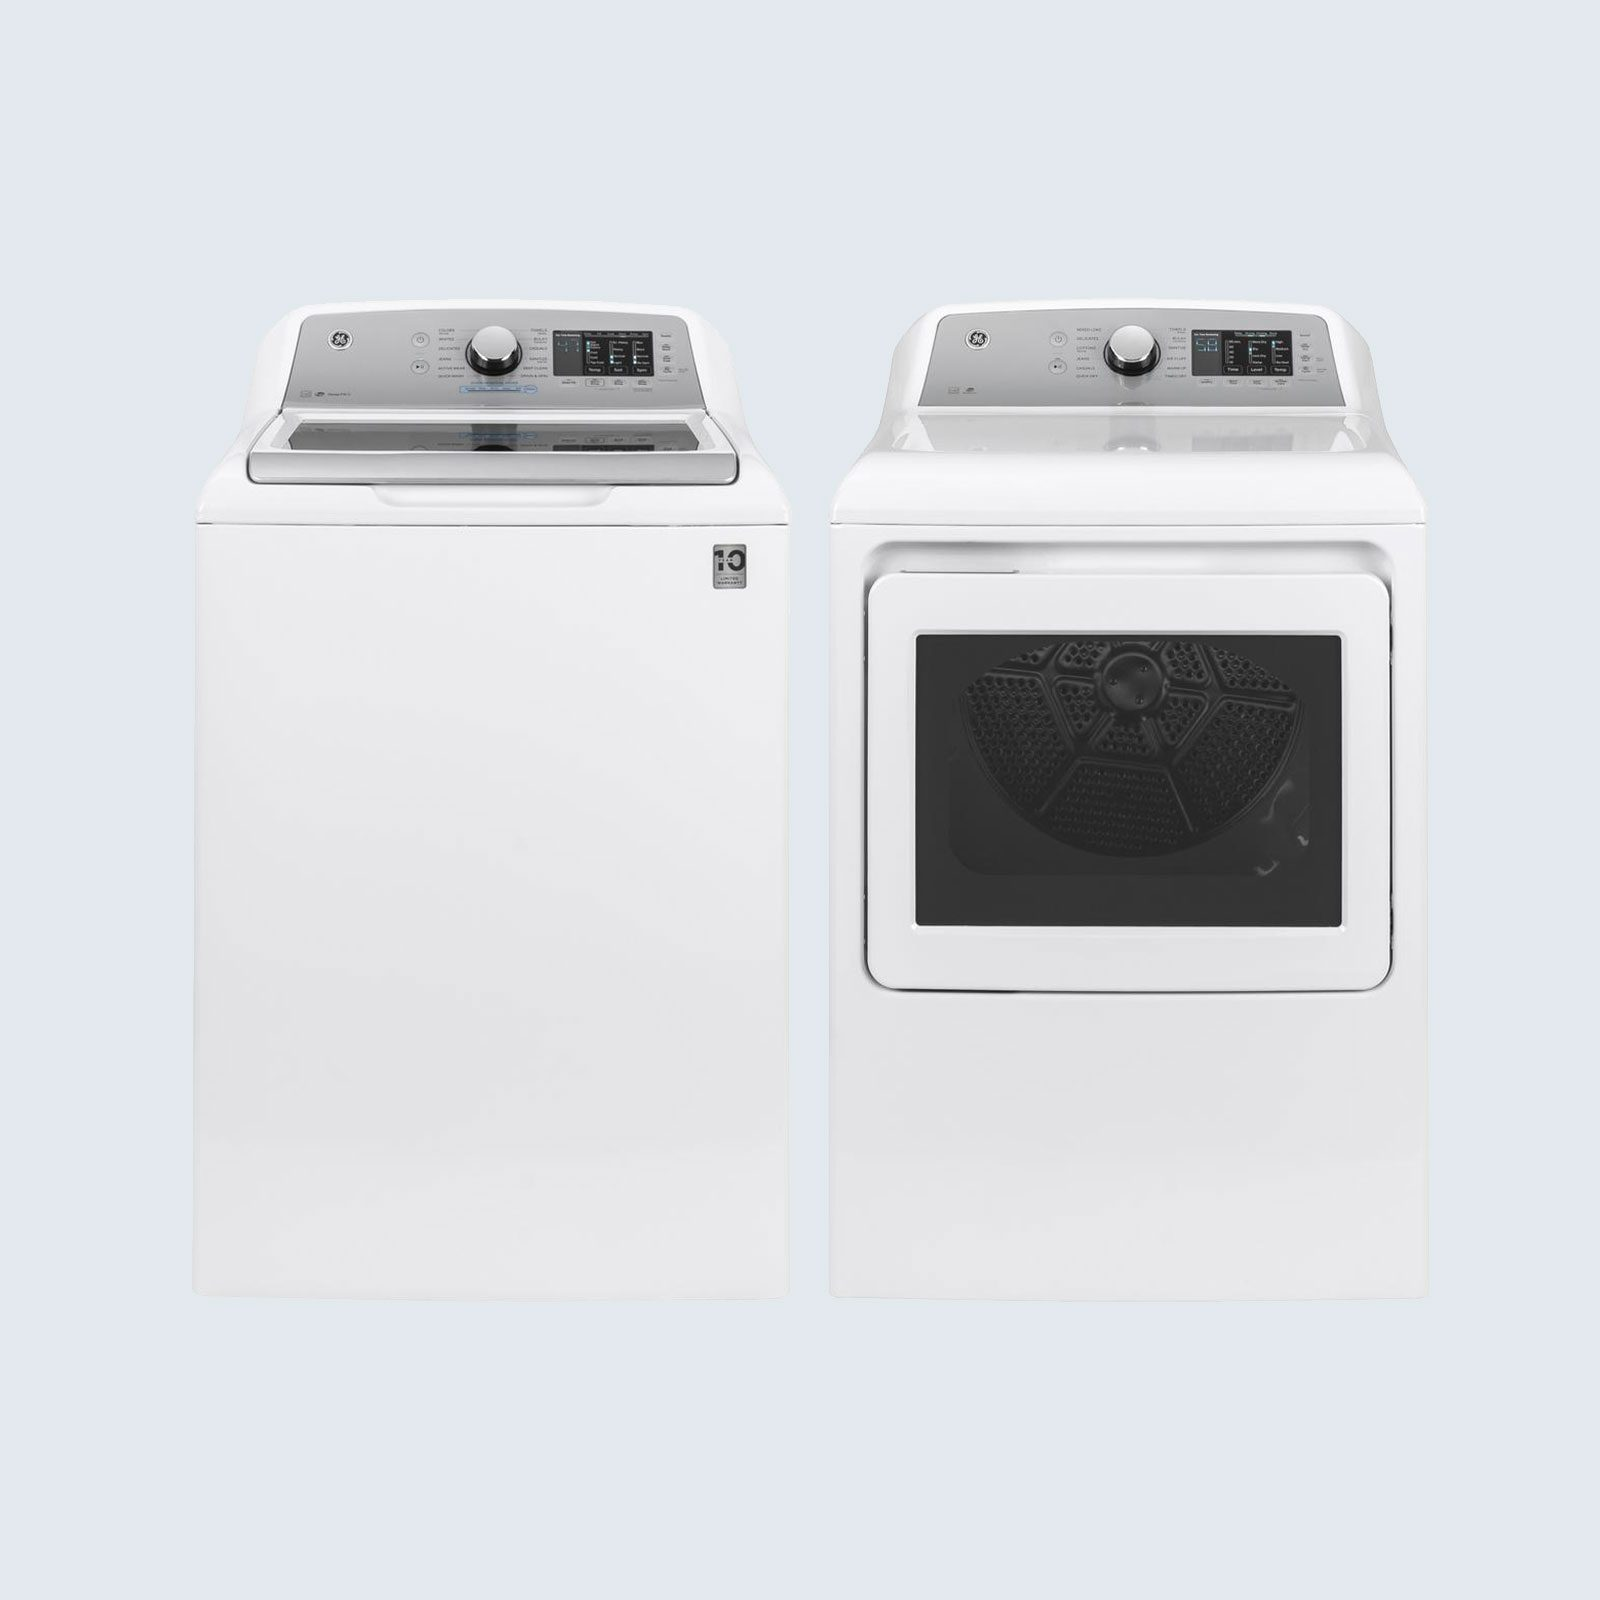 GE High-Efficiency Top Load Washing Machine with FlexDispense and Electric Vented Dryer